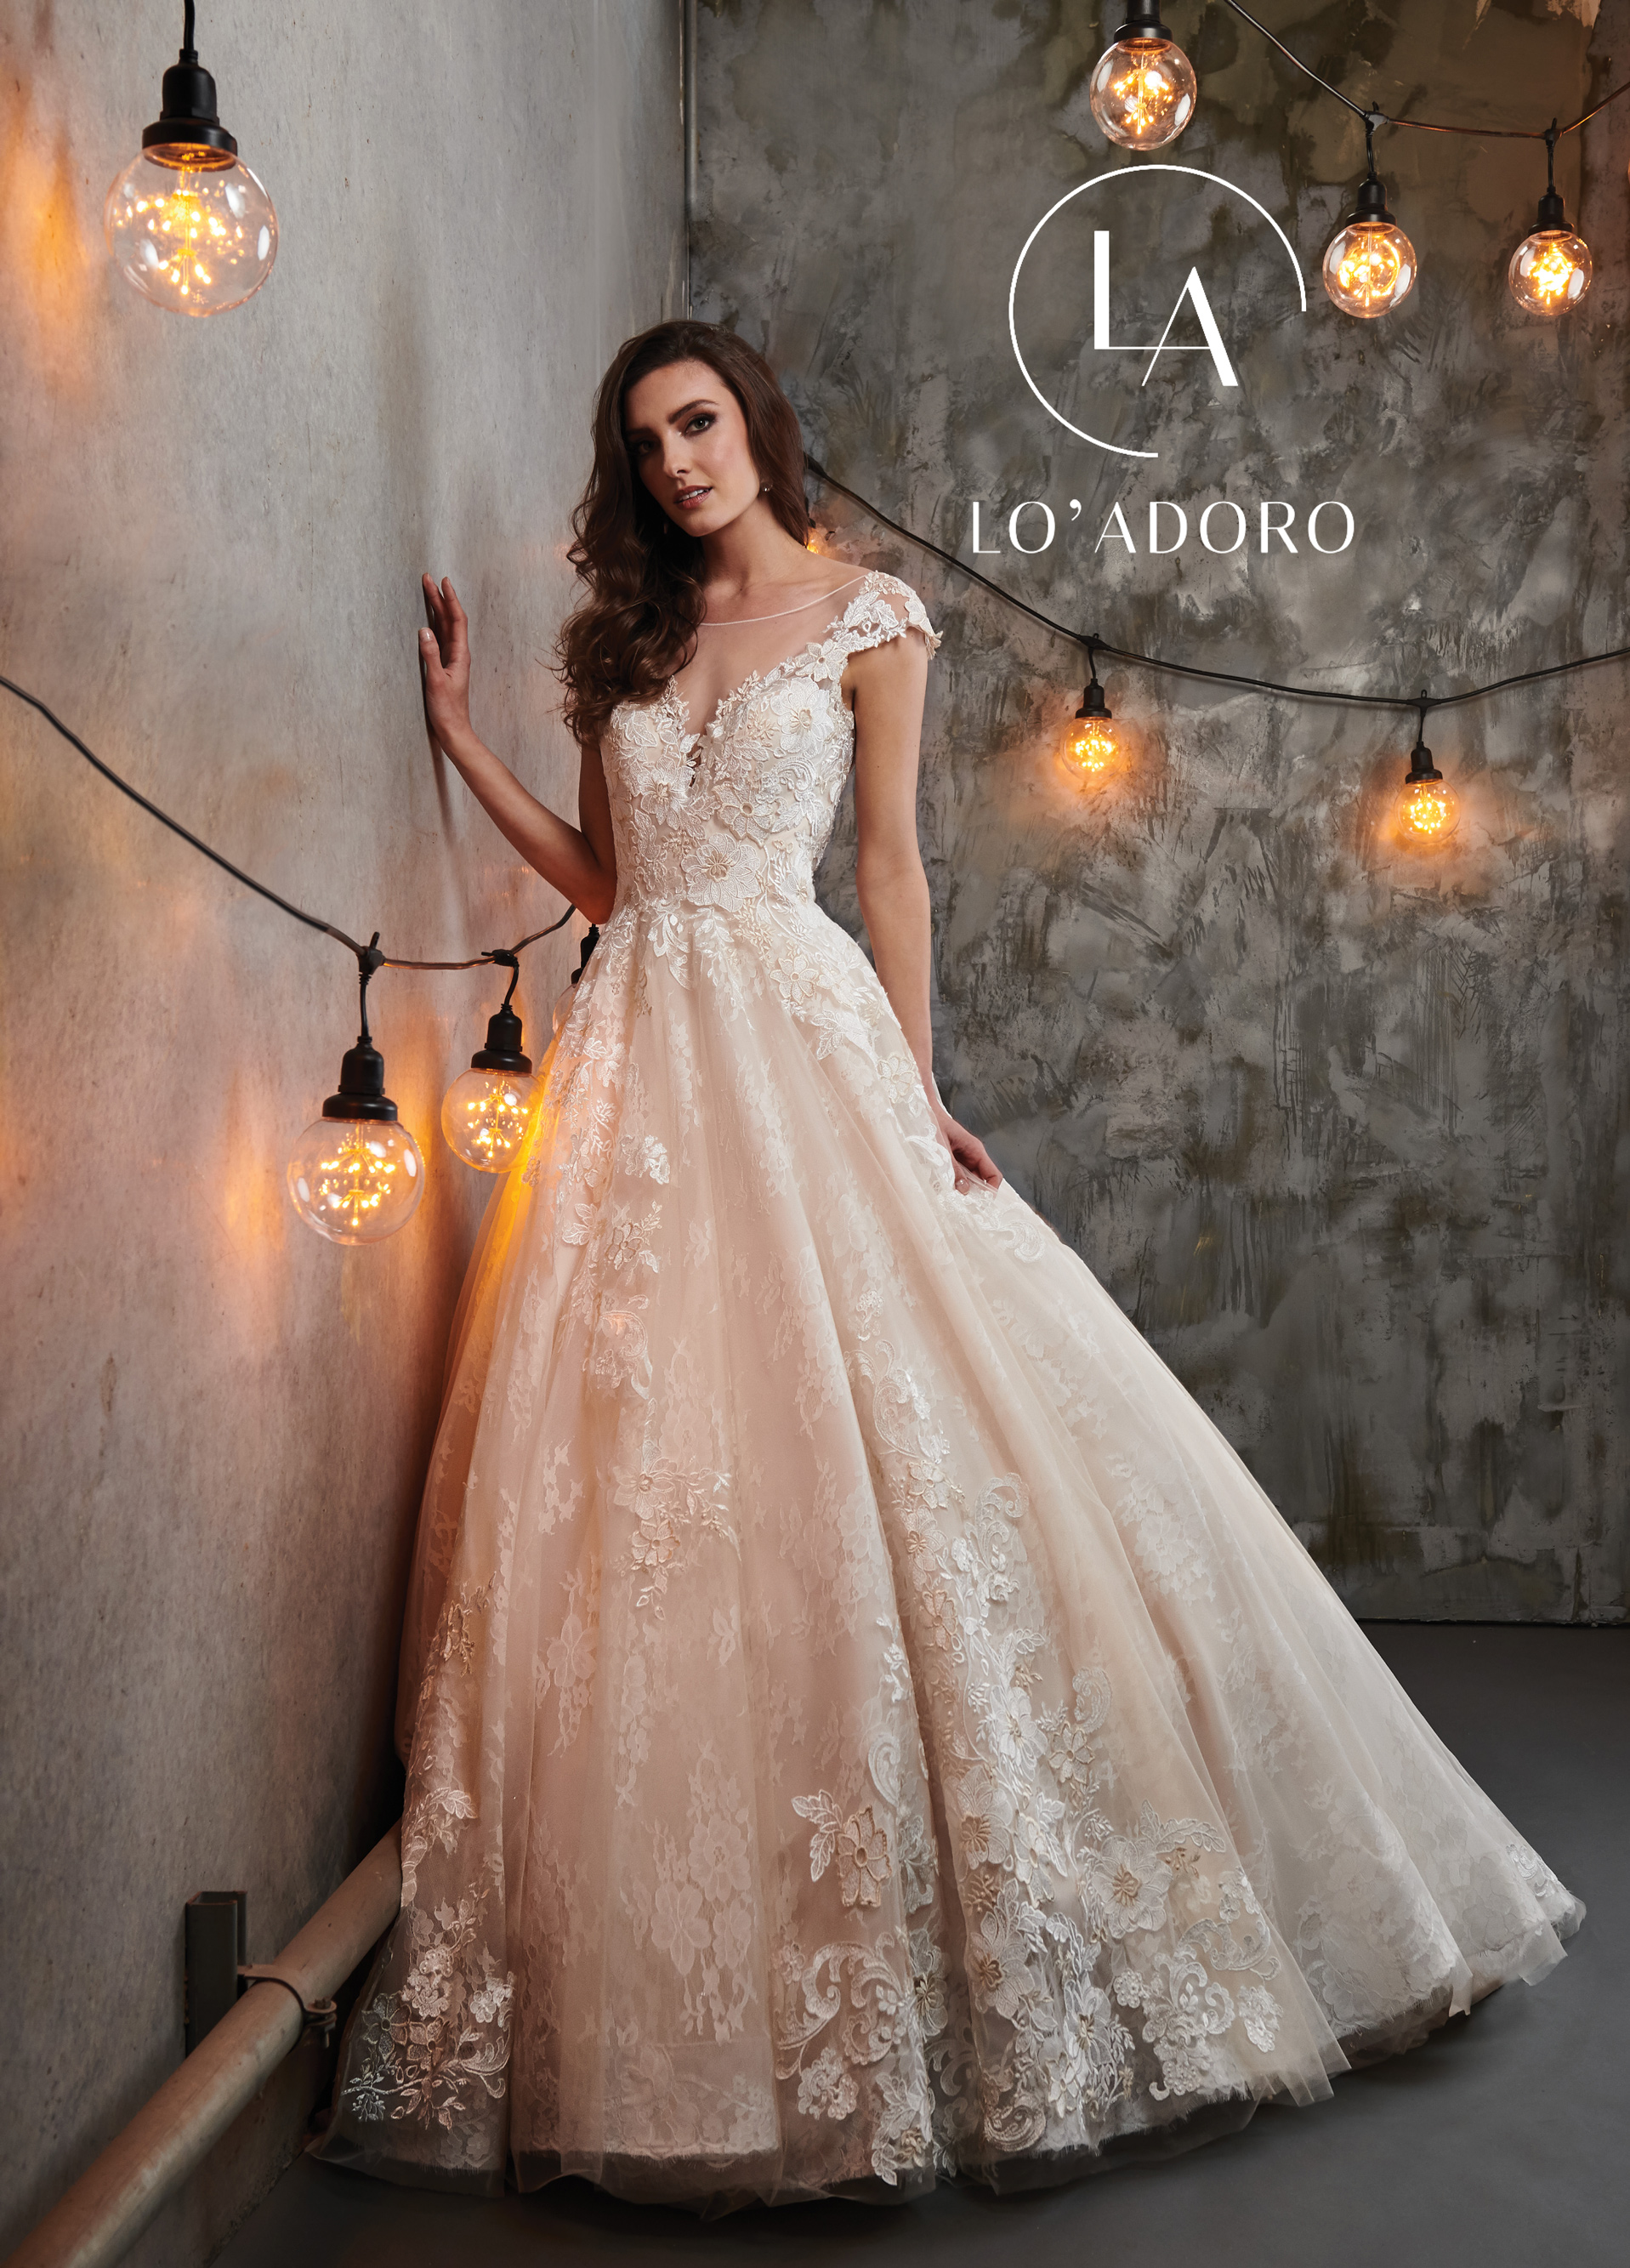 Sheer Ball Gowns Lo' Adoro Bridal in Champagne Color